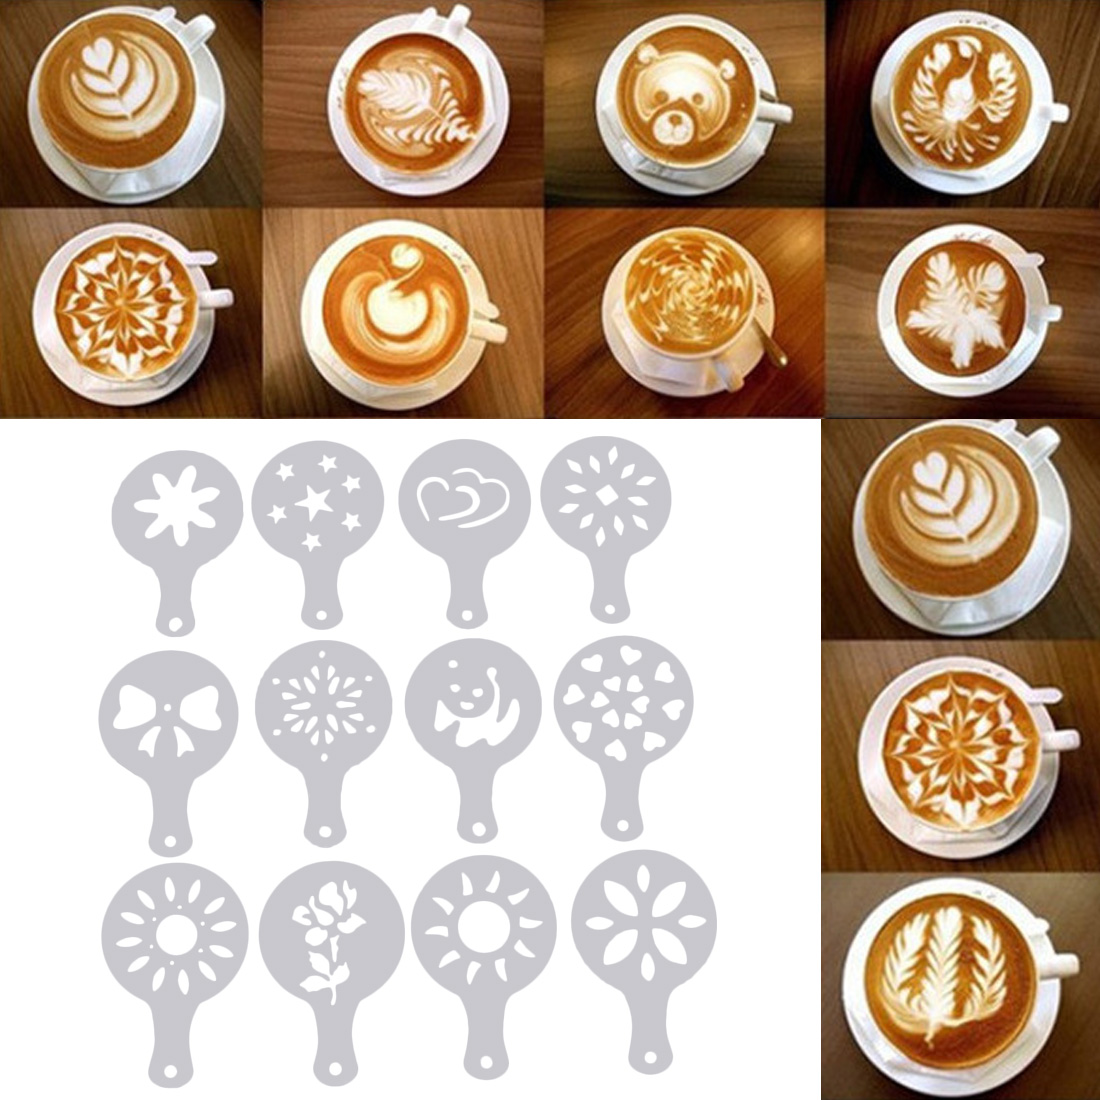 Mike Tea Cappuccino Barista Coffee Stencils Art Drawing Foam Spray Coffee Printing Mold  Cake Duster Templates Stencils Set